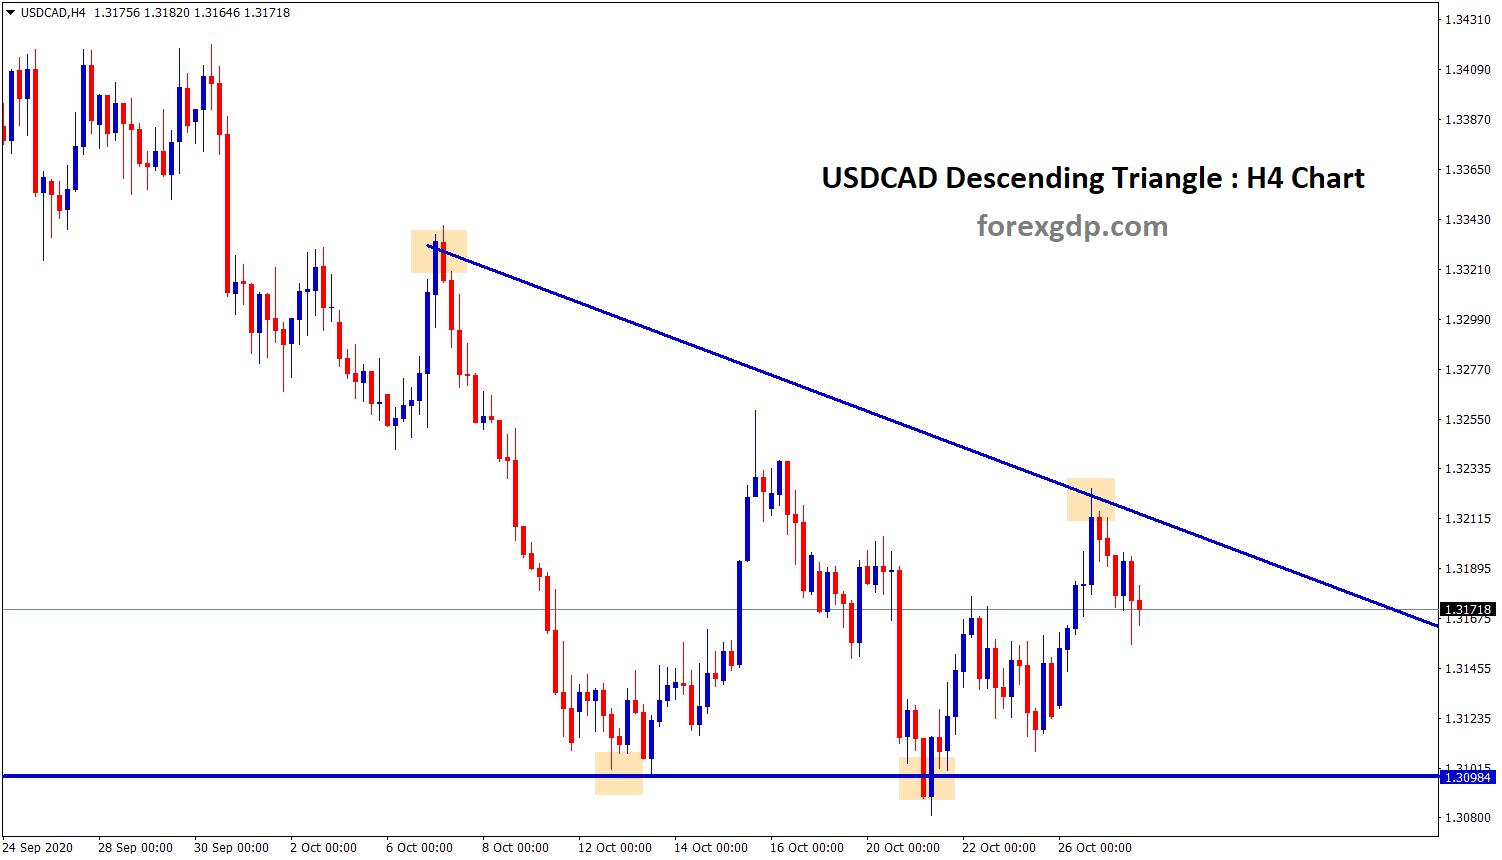 USDCAD descending triangle pattern in the 4 hour chart